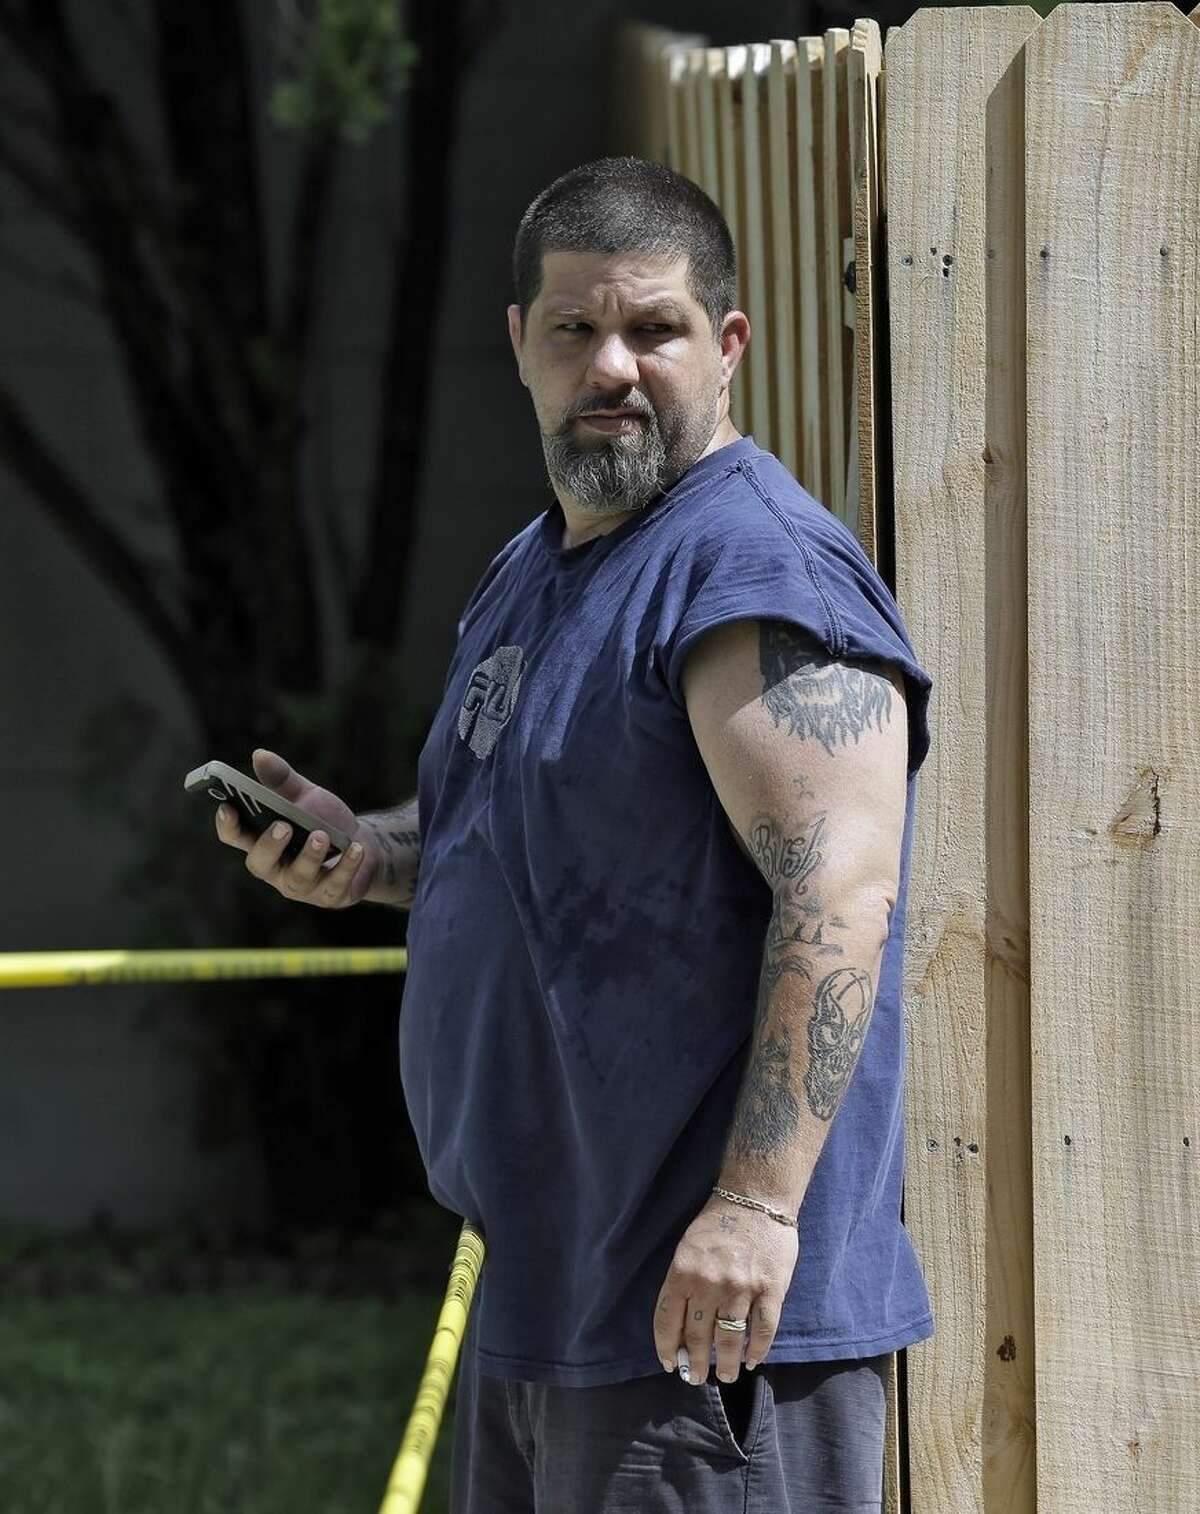 Jeremy Bush watches as members of the Hillsborough County Code Enforcement survey the property where a sinkhole reopened, Wednesday, Aug. 19, 2015, in Seffner, Fla. The sinkhole reopened in the exact same location where one swallowed Jeremy's brother Jeffrey Bush, as he slept in his bed more than two years ago. The new hole is 17 feet wide by 20 feet deep, according to code enforcement director Ron Spiller. In March 2013, Jeffrey Bush was asleep in his bedroom on the property when the floor collapsed and he fell in. His body was never recovered. (AP Photo/Chris O'Meara)